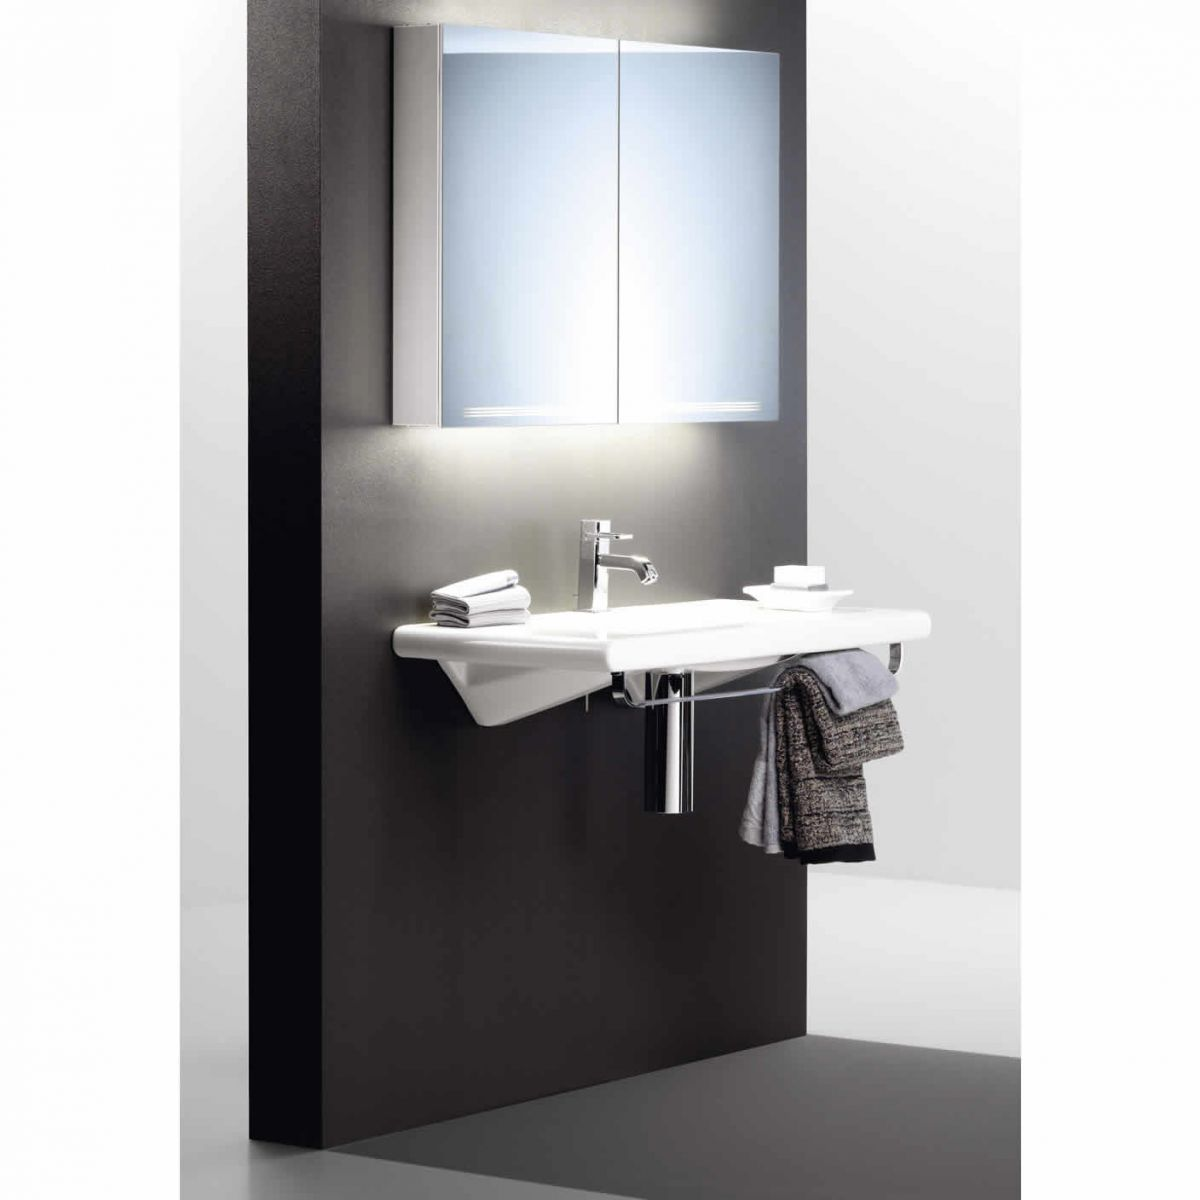 Bathroom Cabinet With Mirror Schneider Graceline Mirror Cabinet Uk Bathrooms